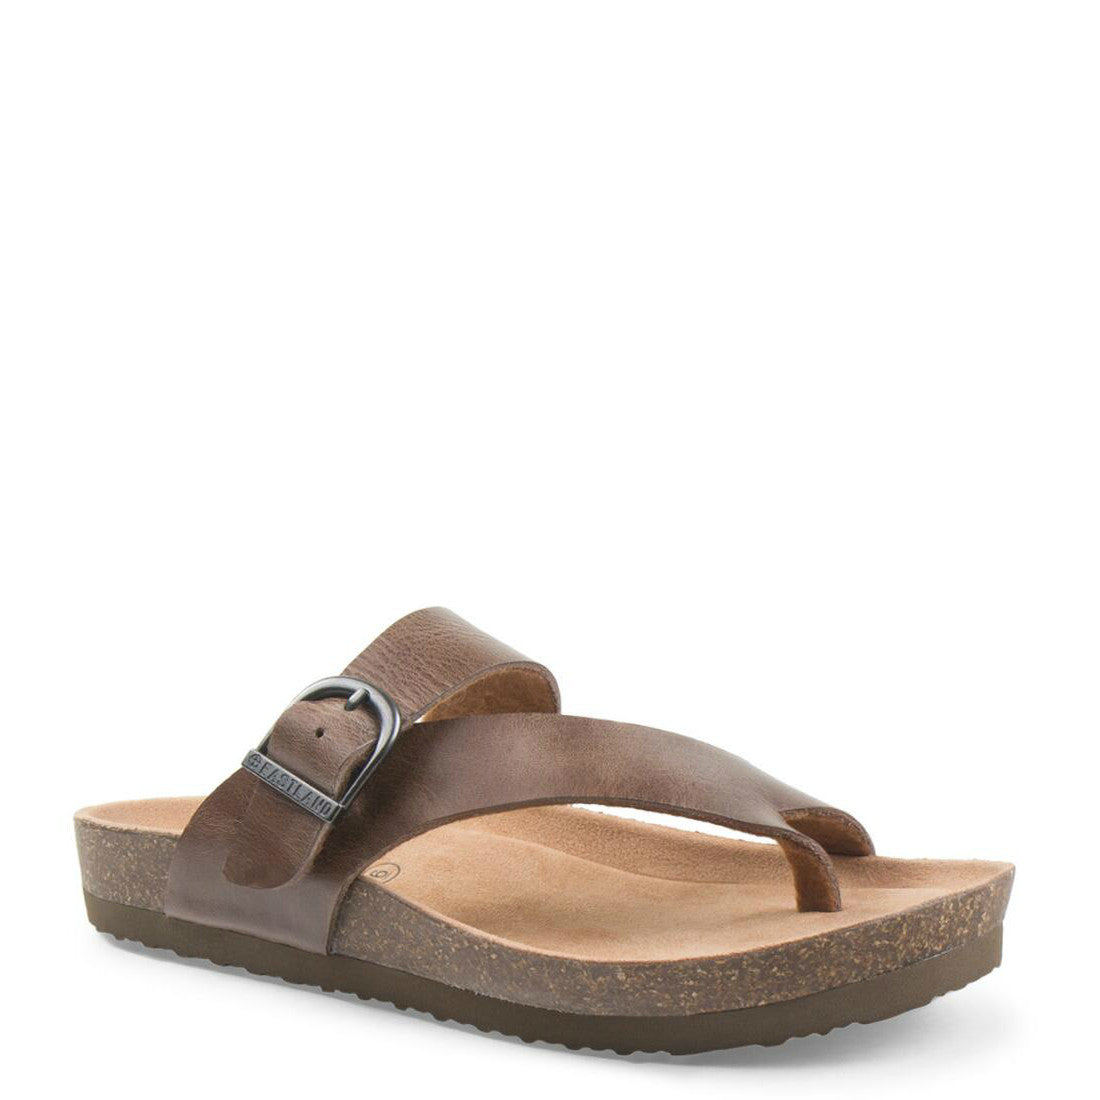 Eastland Women's Shauna Adjustable Thong Sandal - Natural 3402-08M - ShoeShackOnline